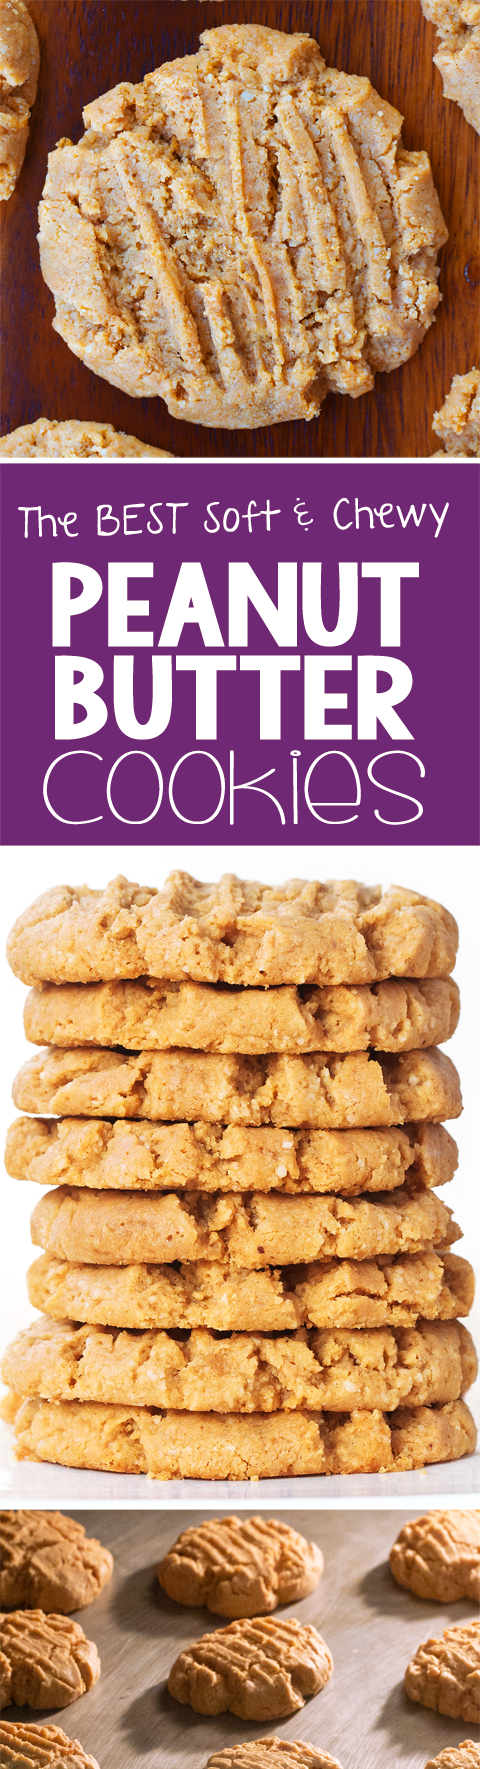 The BEST Peanut Butter Cookie Recipe!!!